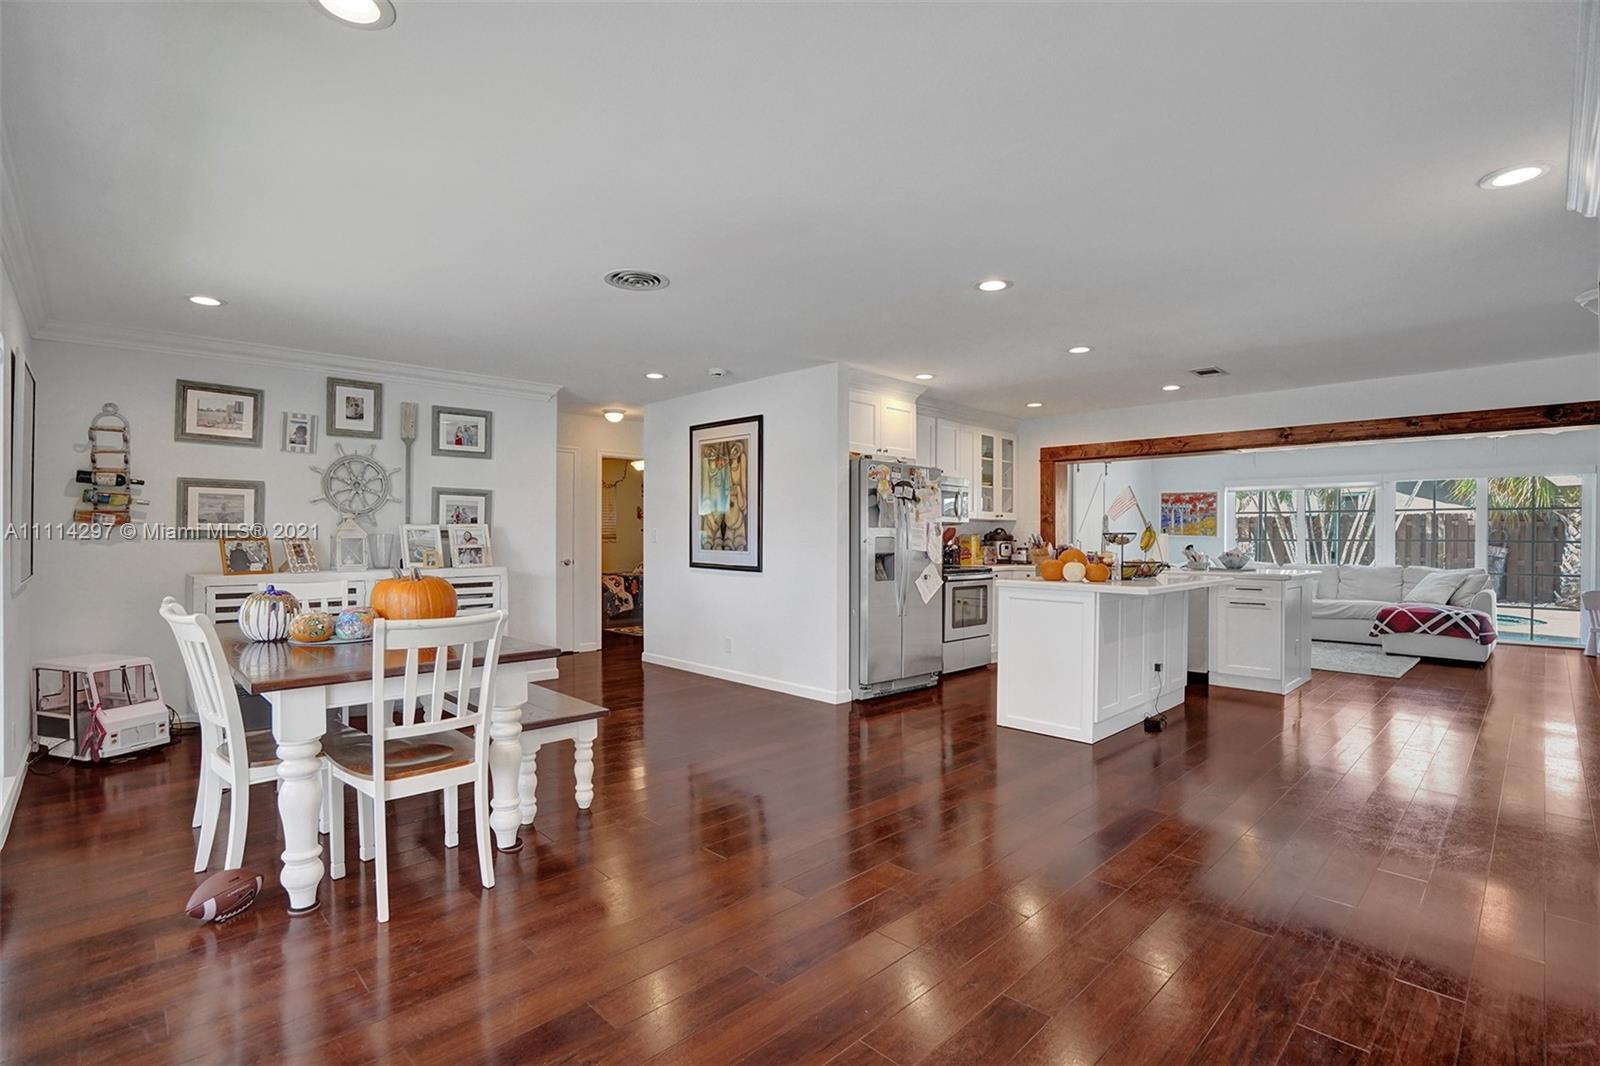 Location! Completely remodeled 4 bed 3 bath home with sparkling pool & beautifully landscaped yard i